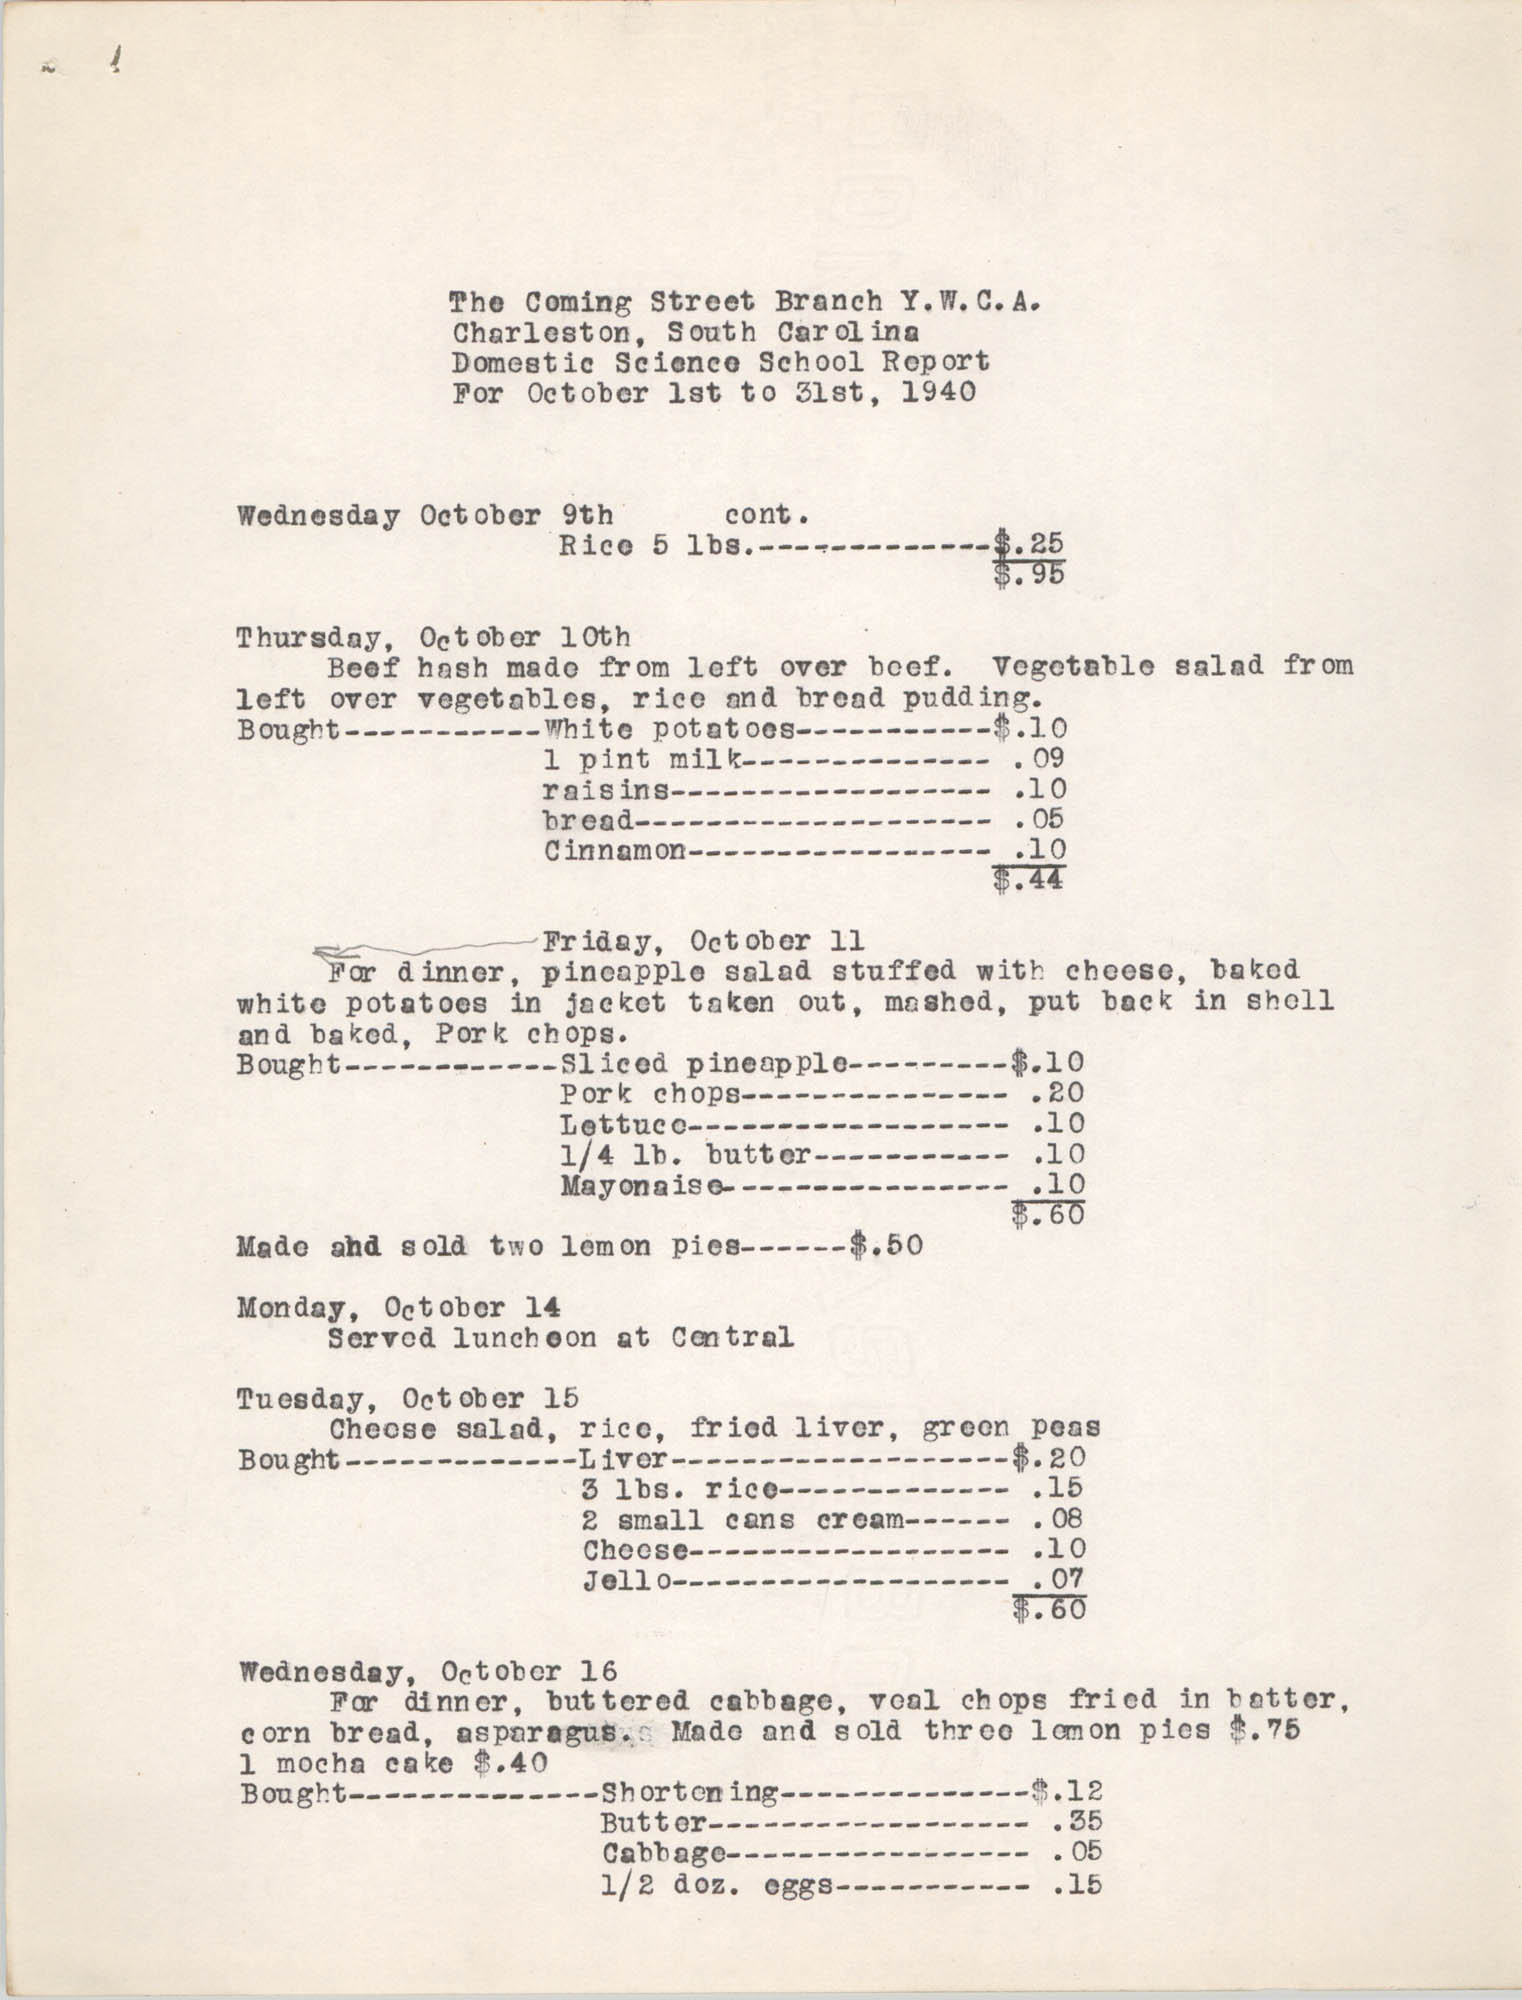 Monthly Report for the Coming Street Y.W.C.A., Domestic Science School, October 1940, Page 3